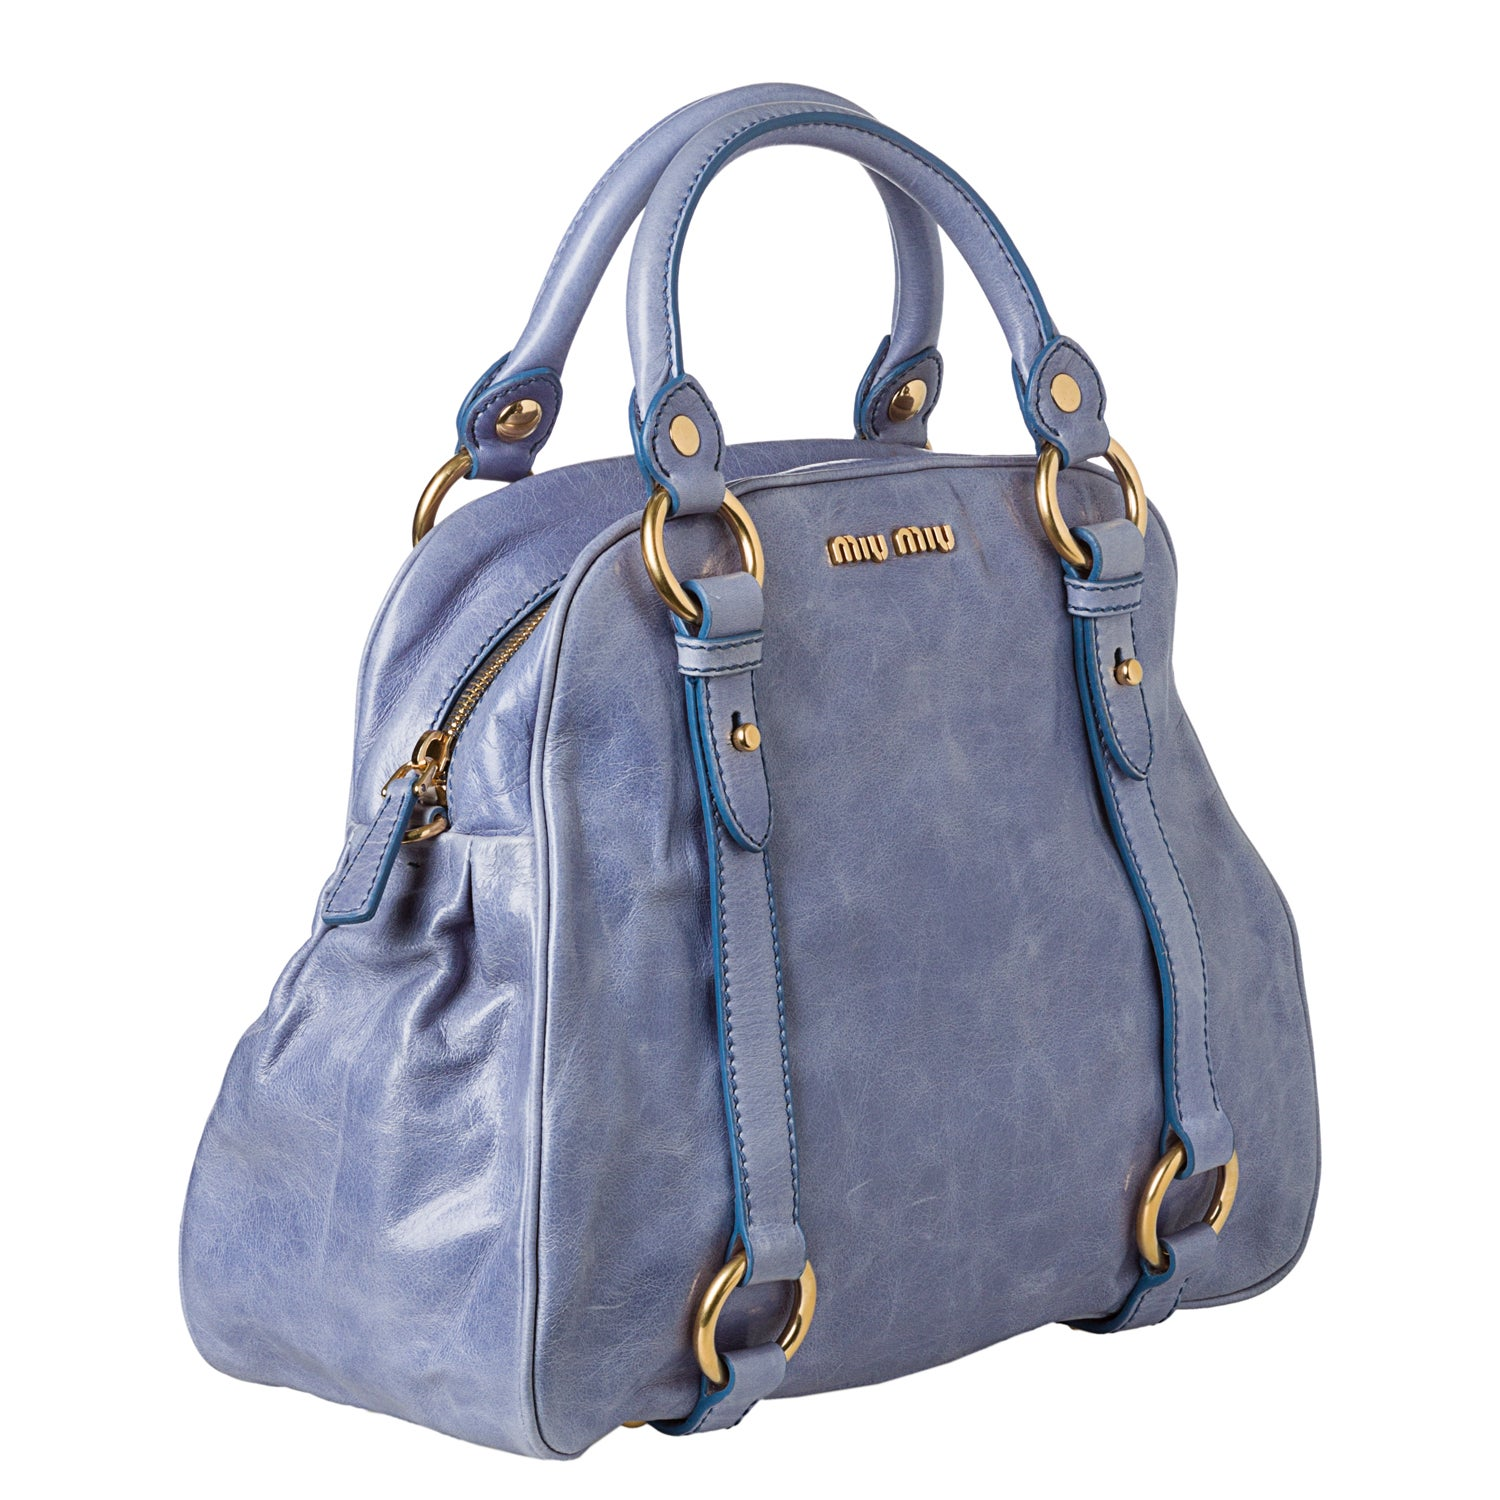 3c1727a5f05f Shop Miu Miu  Vitello  Shine Satchel - Free Shipping Today - Overstock.com  - 8021803